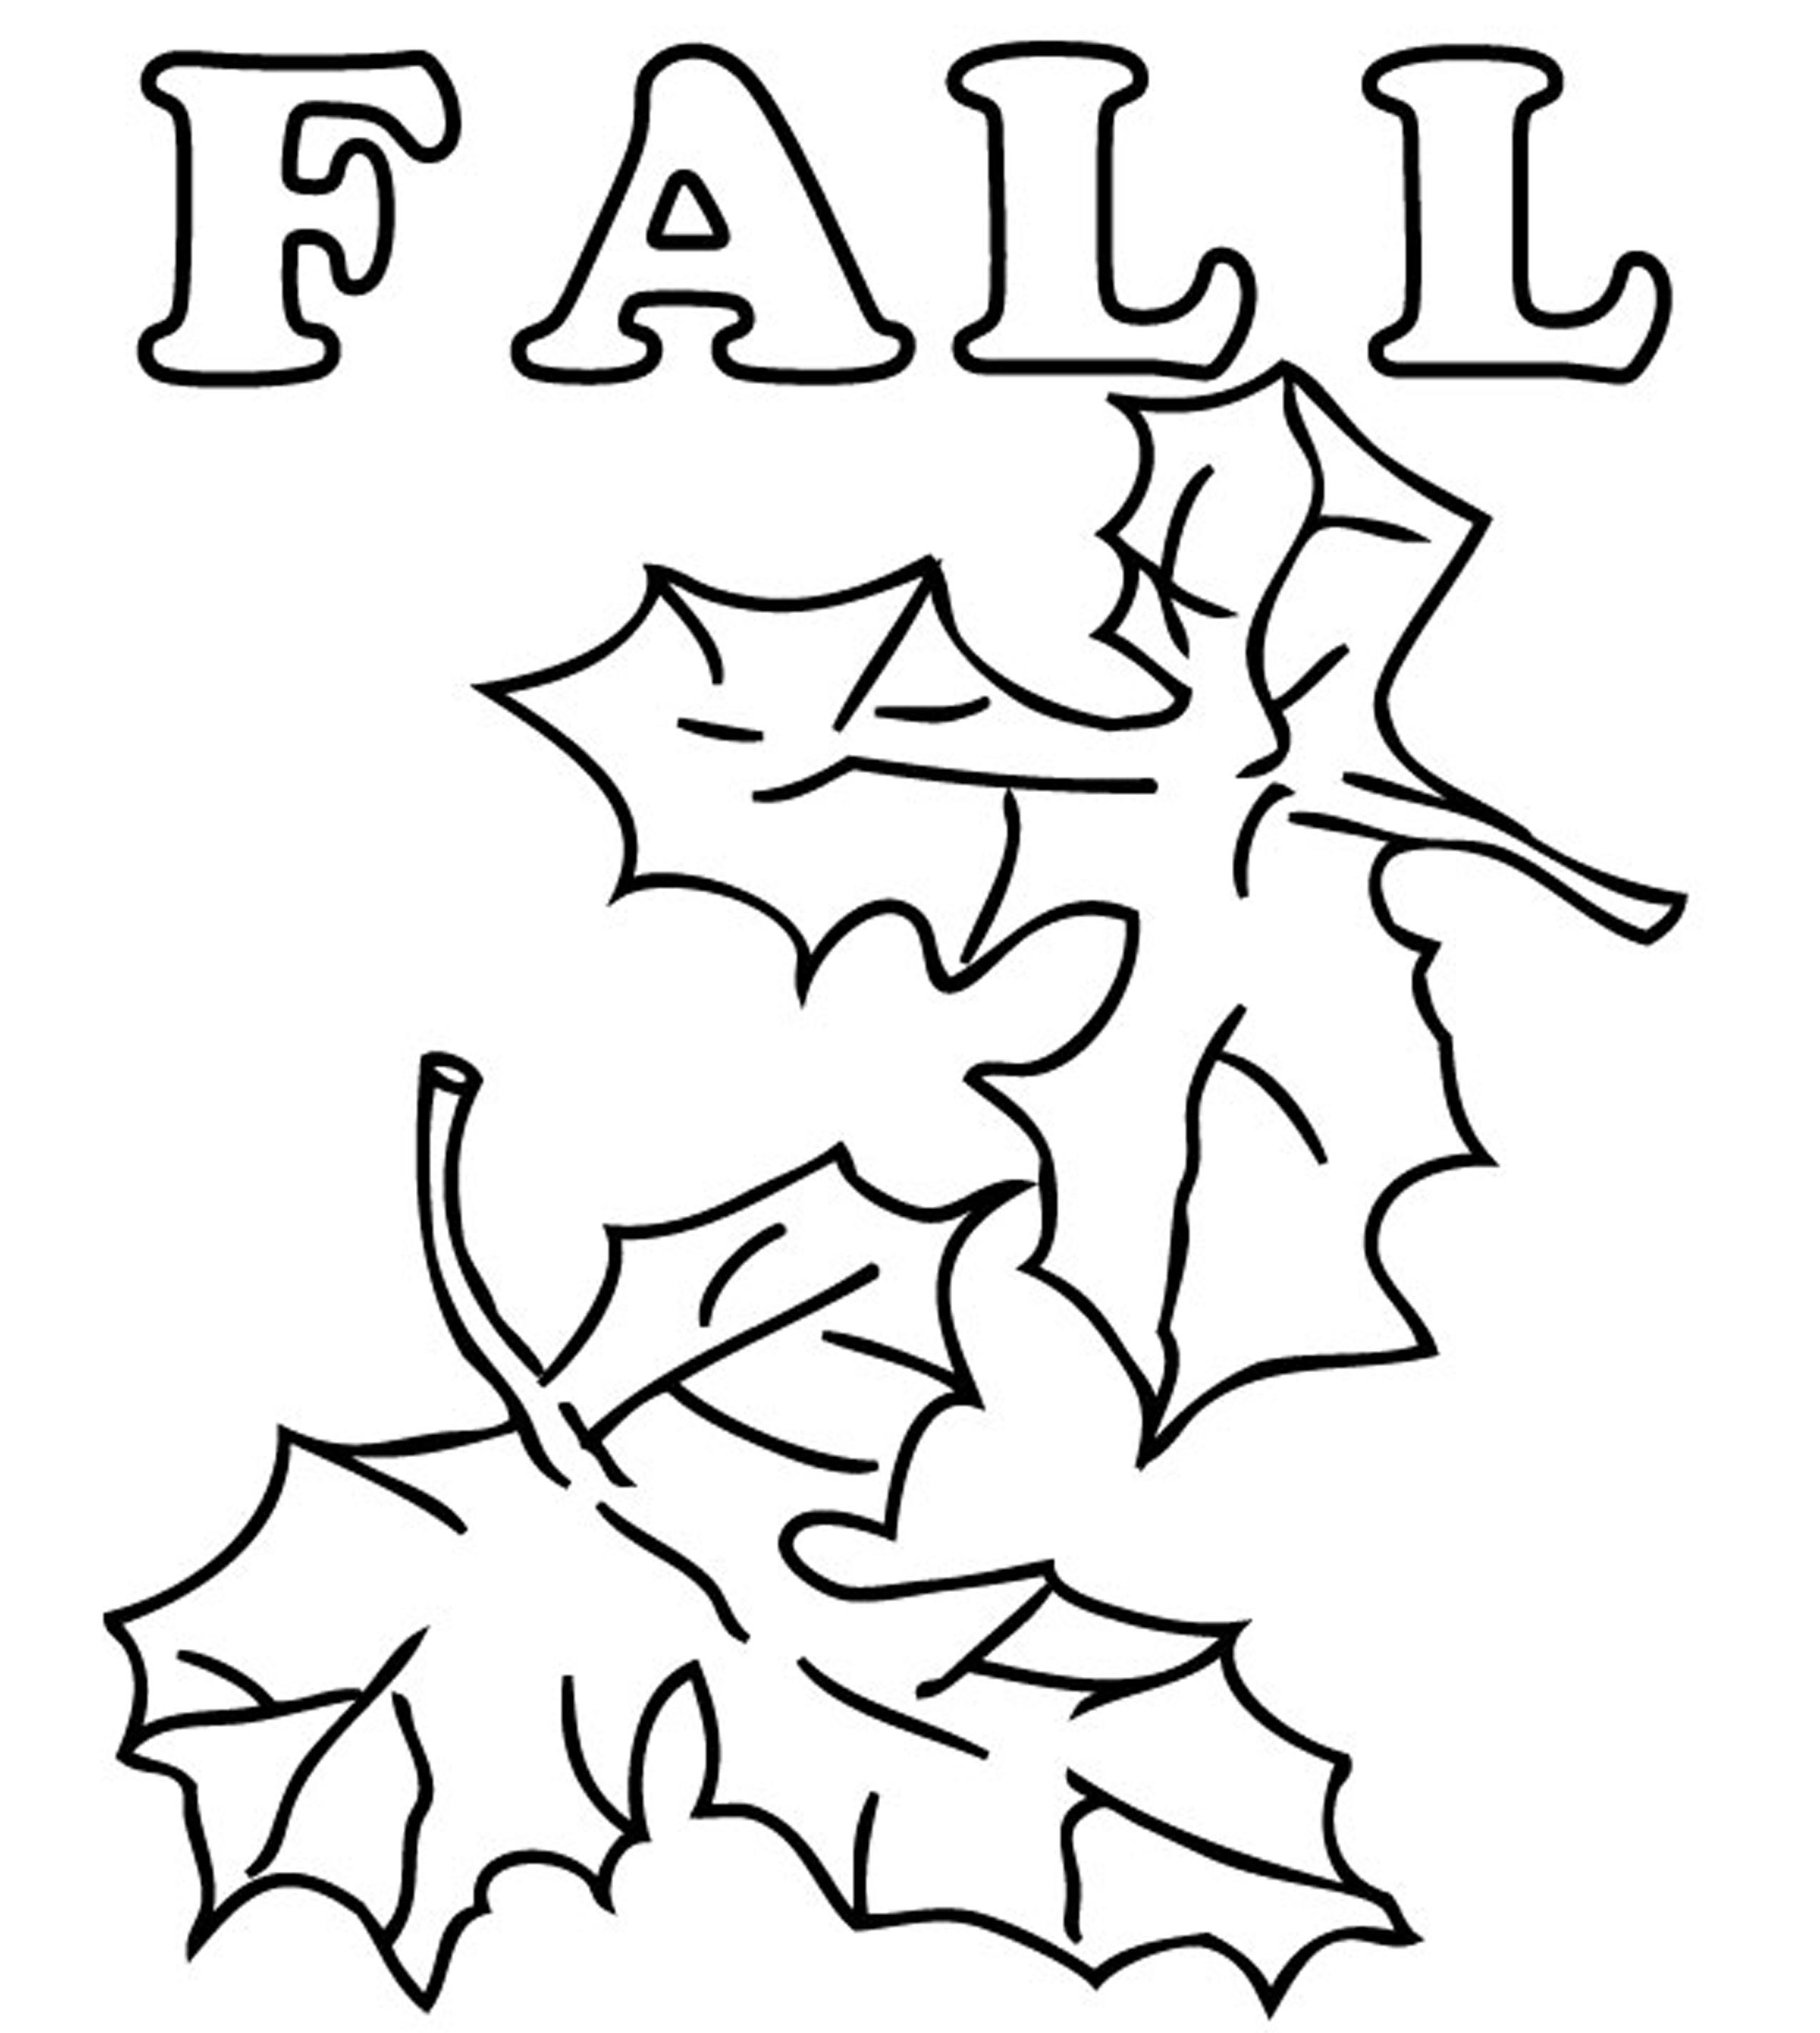 Falling Leaf Drawing At Getdrawings